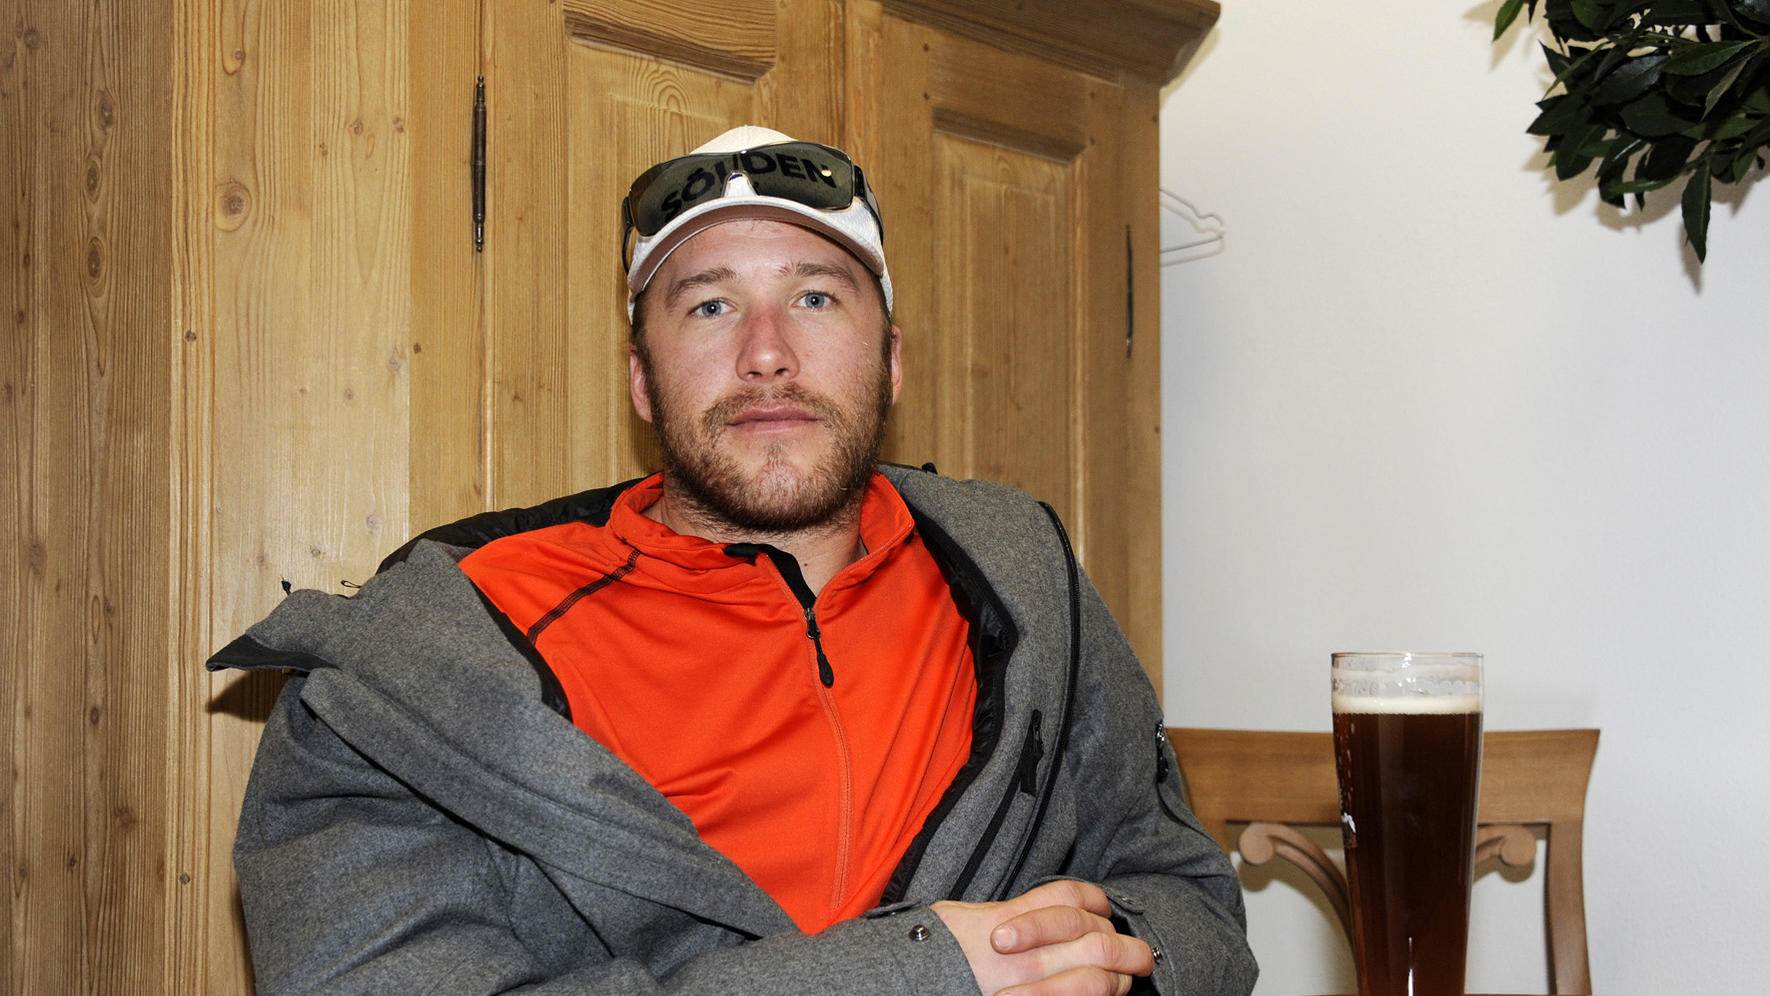 Pokerface Bode Miller - das Interview!